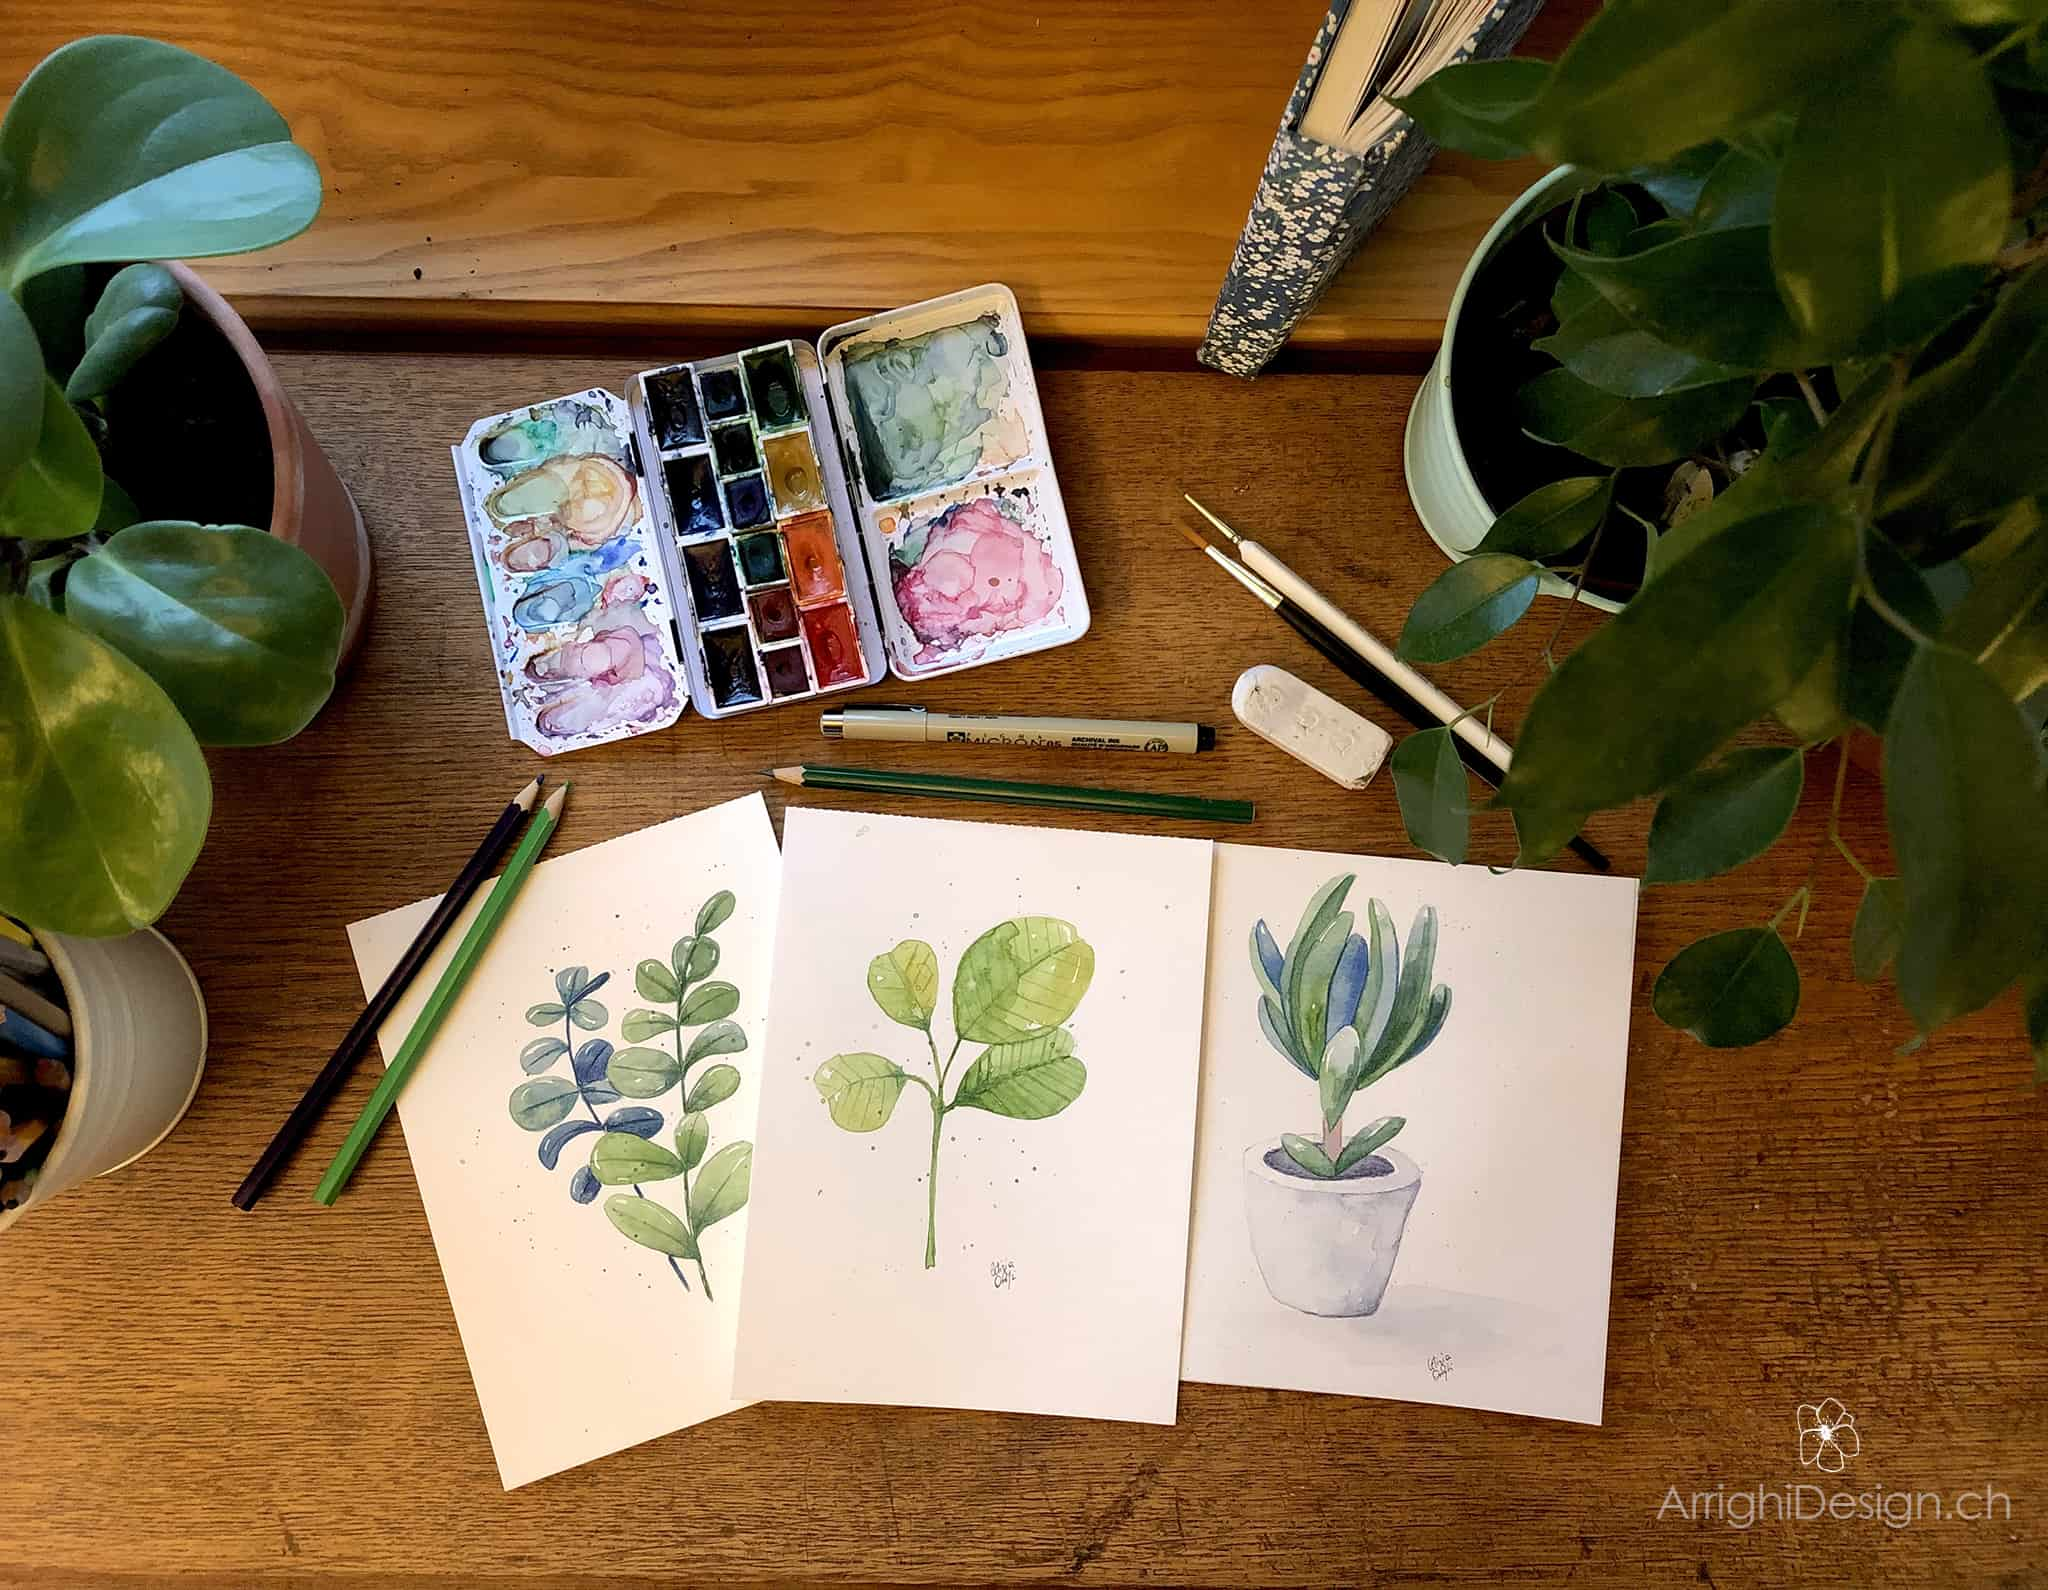 illustrations made with watercolors